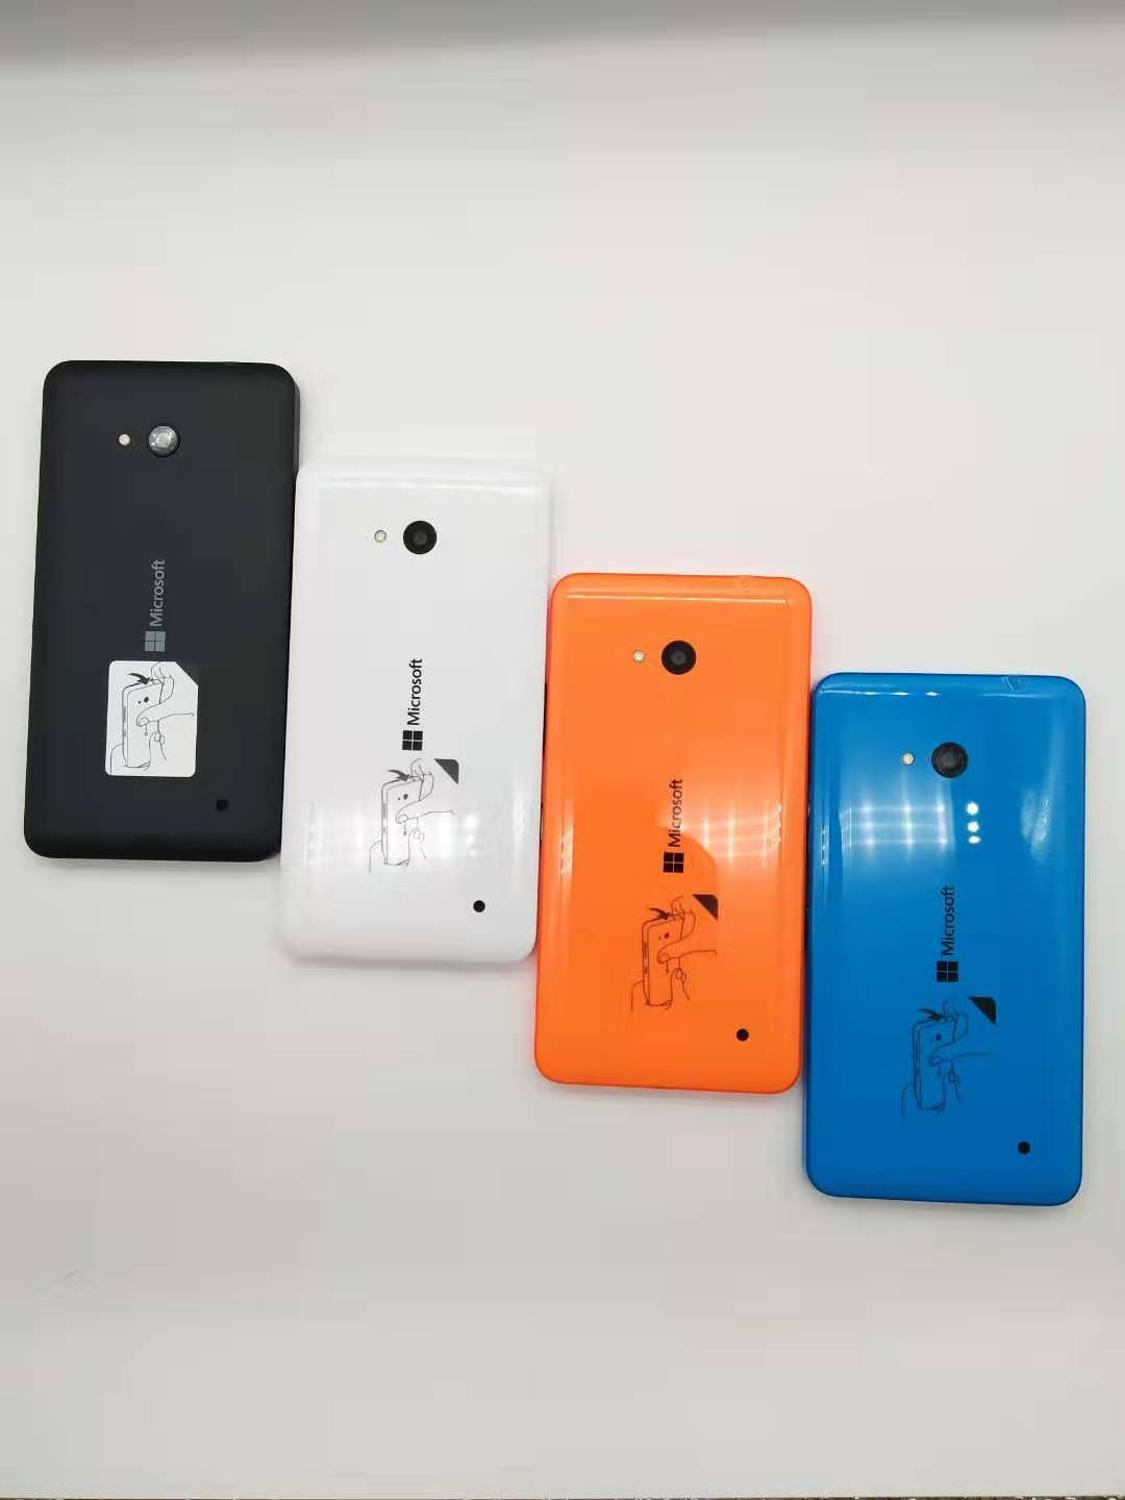 Original Nokia <font><b>Lumia</b></font> 640 & <font><b>Lumia</b></font> <font><b>640XL</b></font> single SIM & Dual SIM 5.0inch 8MP Quad core 8GB ROM 1GB RAM Unlocked Touchscreen Good! image